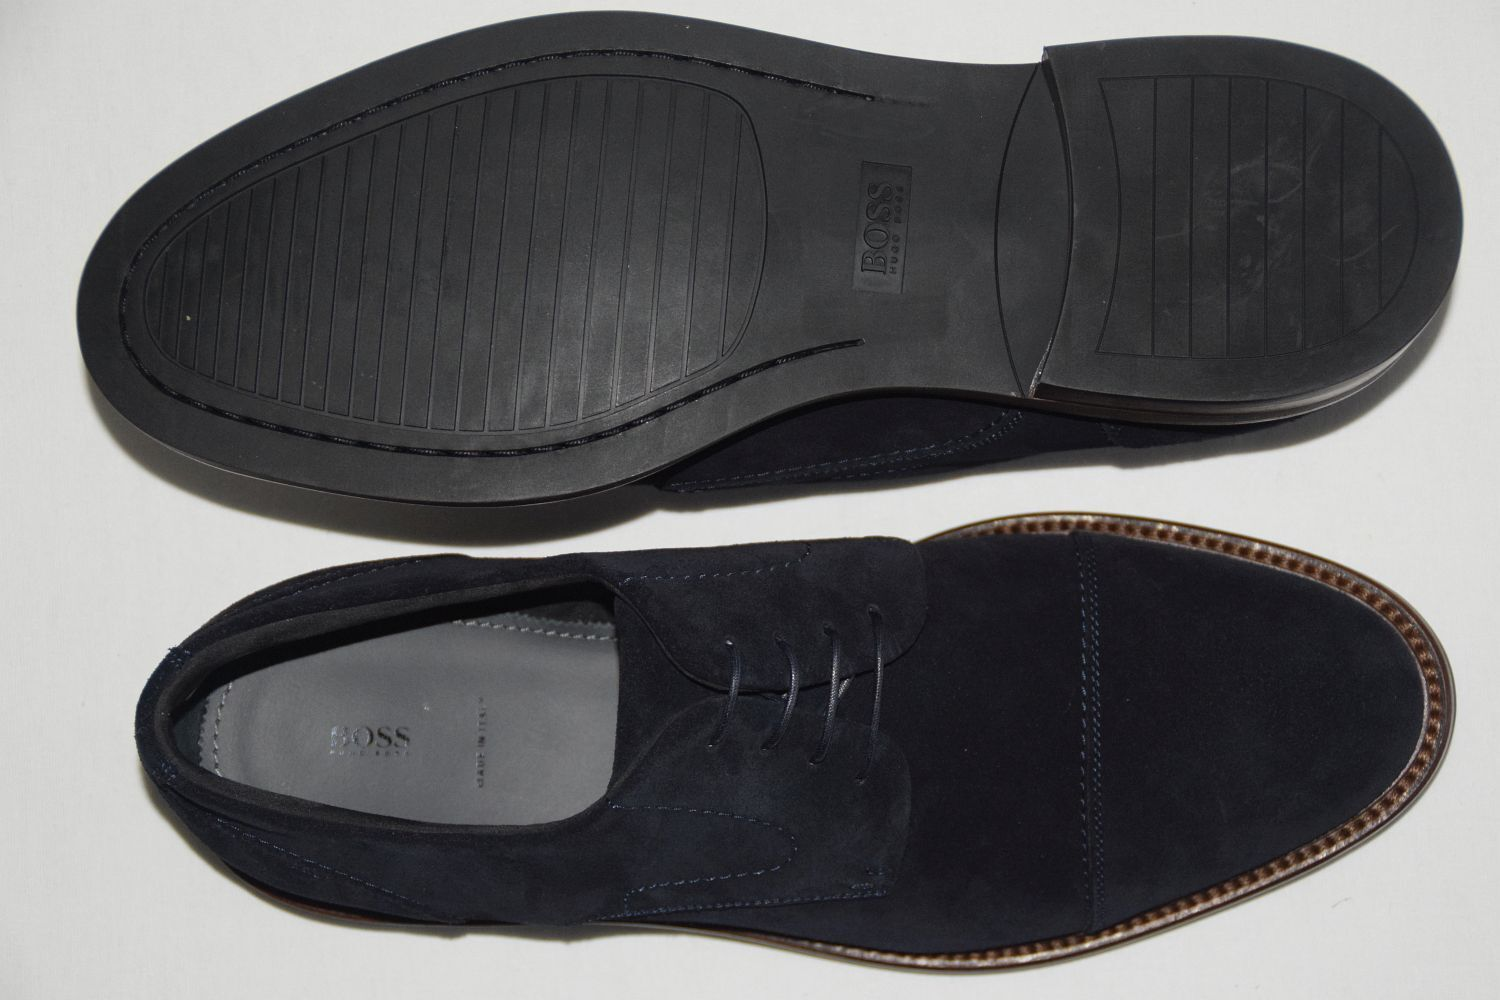 HUGO BOSS BUSINESSSCHUHE, Gr. EU 43,5, 43,5, 43,5,   , Made in , Dark Blau 842122